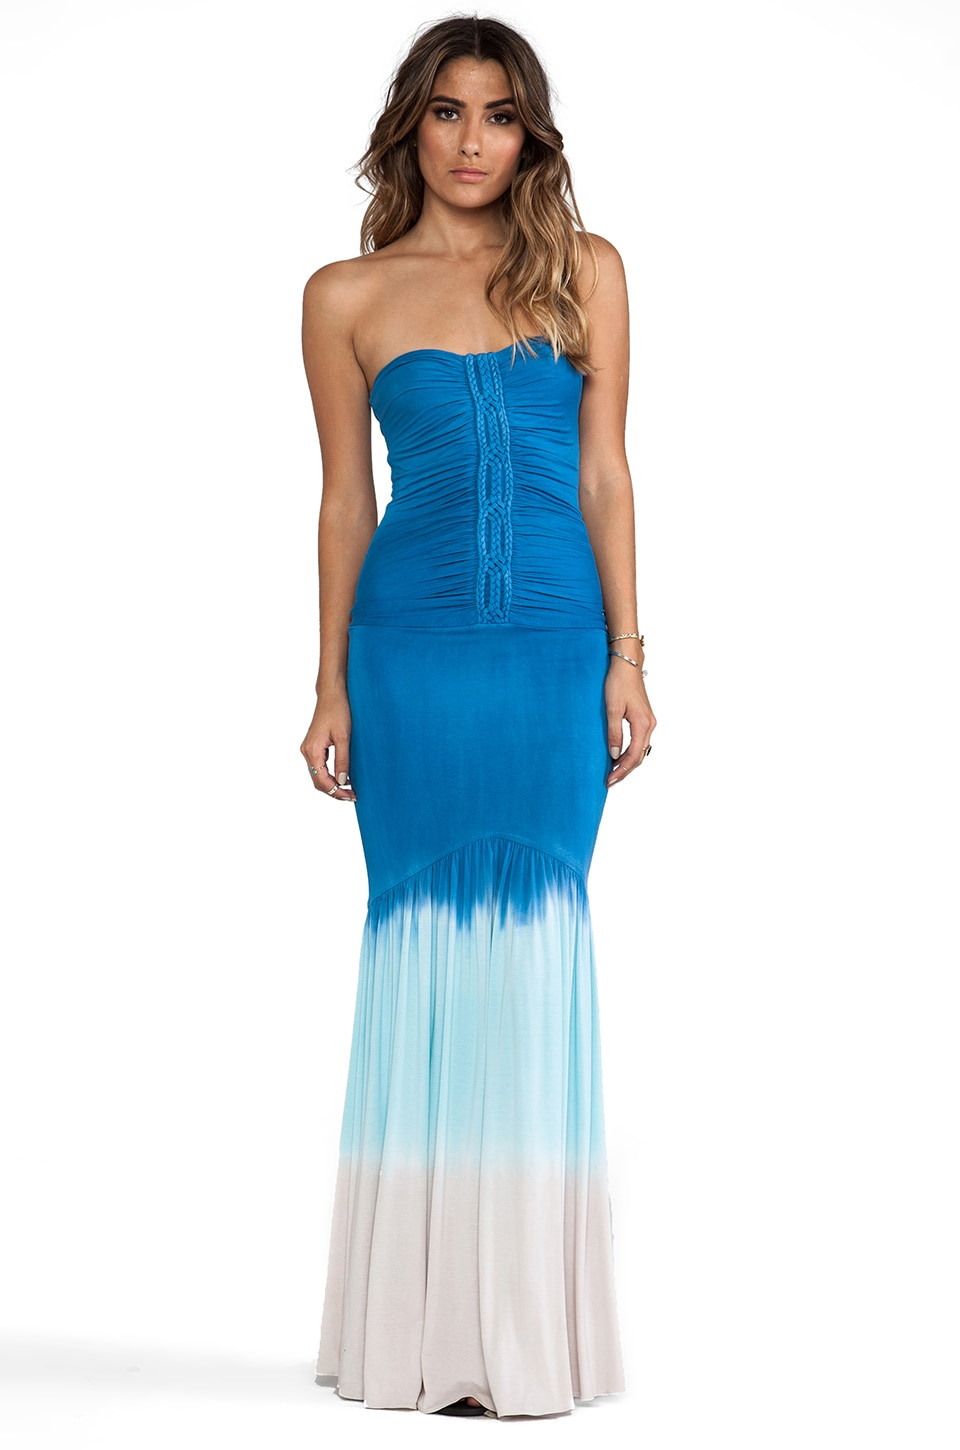 sky Galenka Dress in Blue